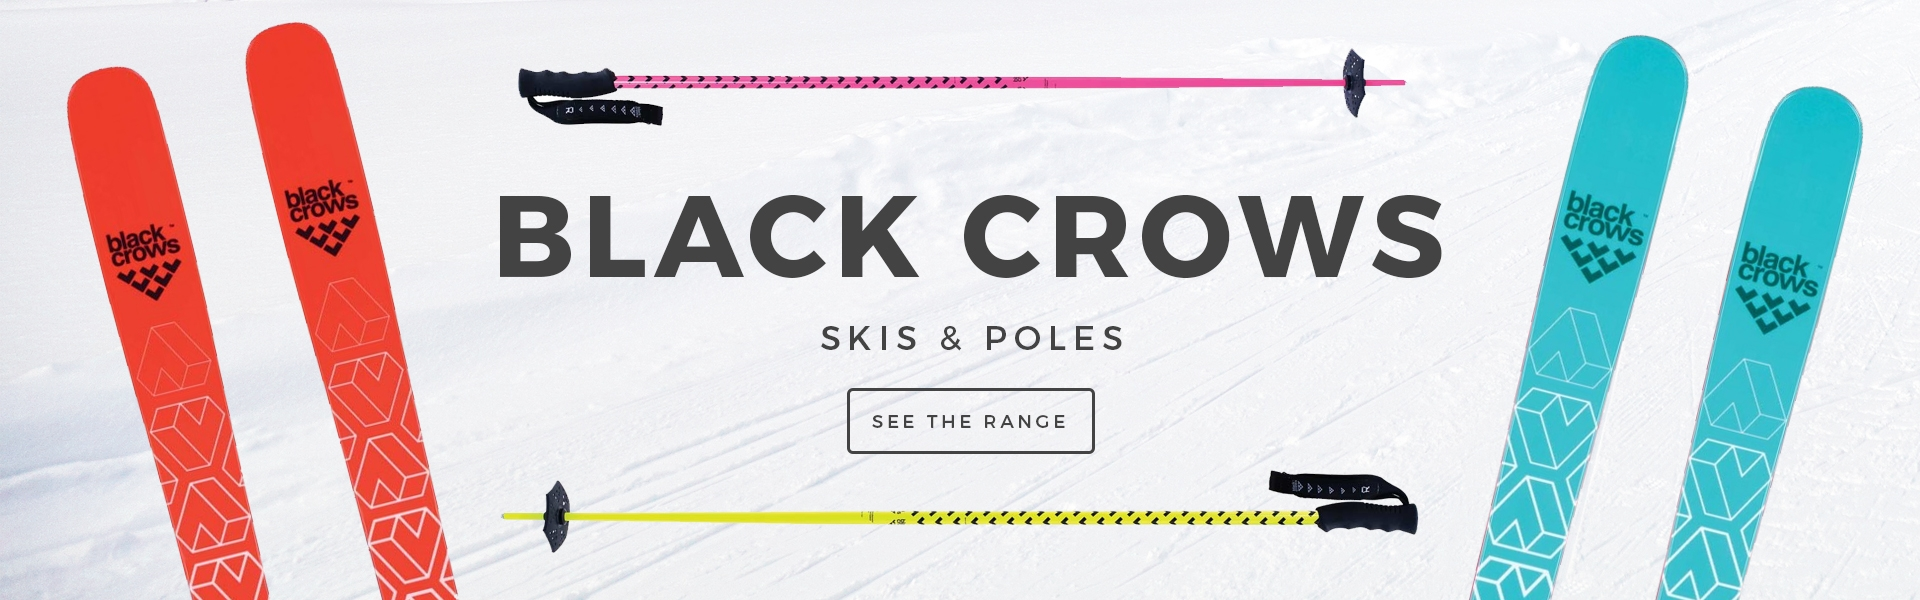 Buy Black Crows Skis and Poles Online